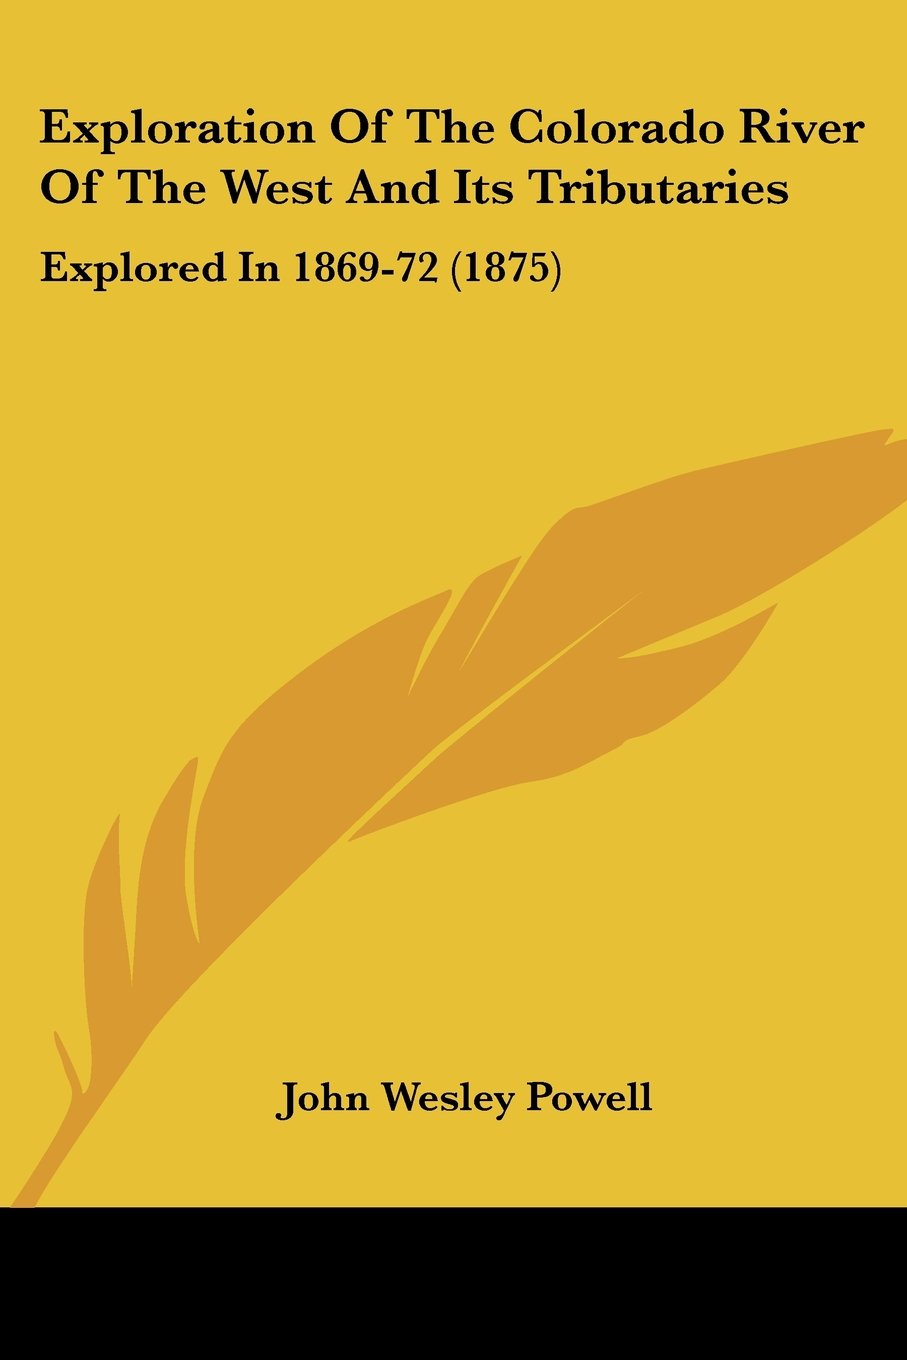 Exploration Of The Colorado River Of The West And Its Tributaries: Explored In 1869-72 (1875) pdf epub